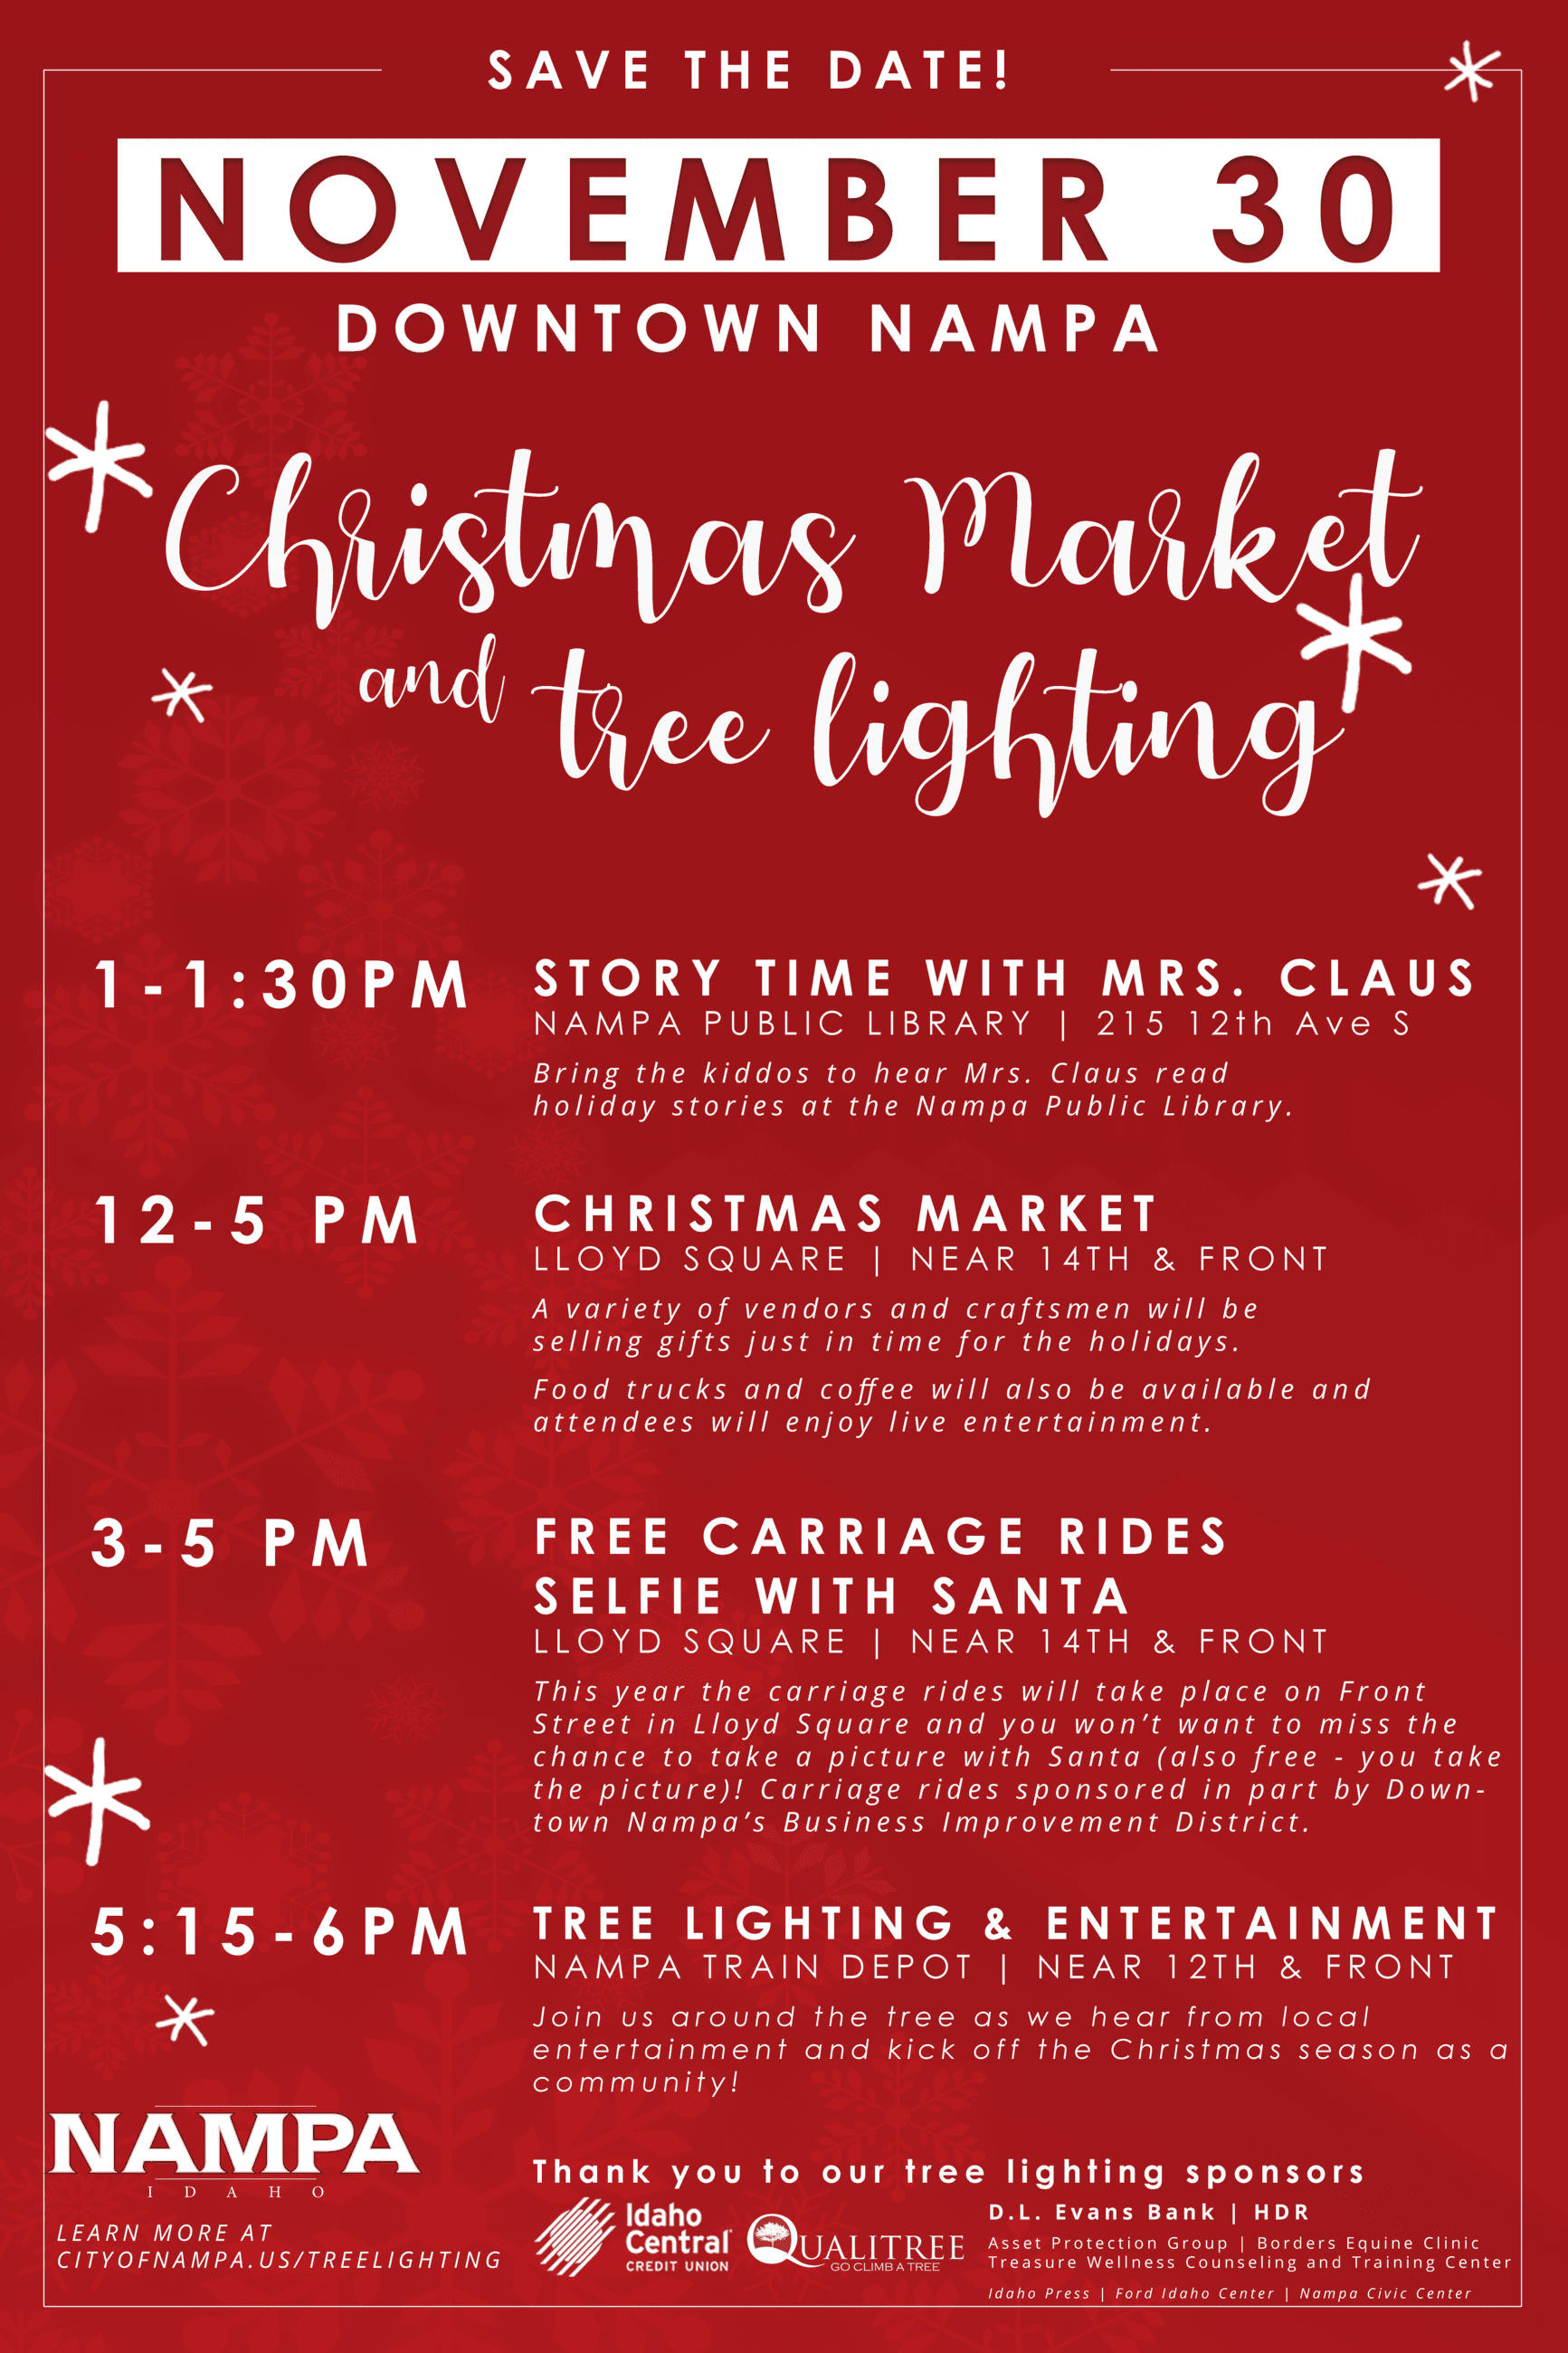 Christmas Market and Tree Lighting Save the date